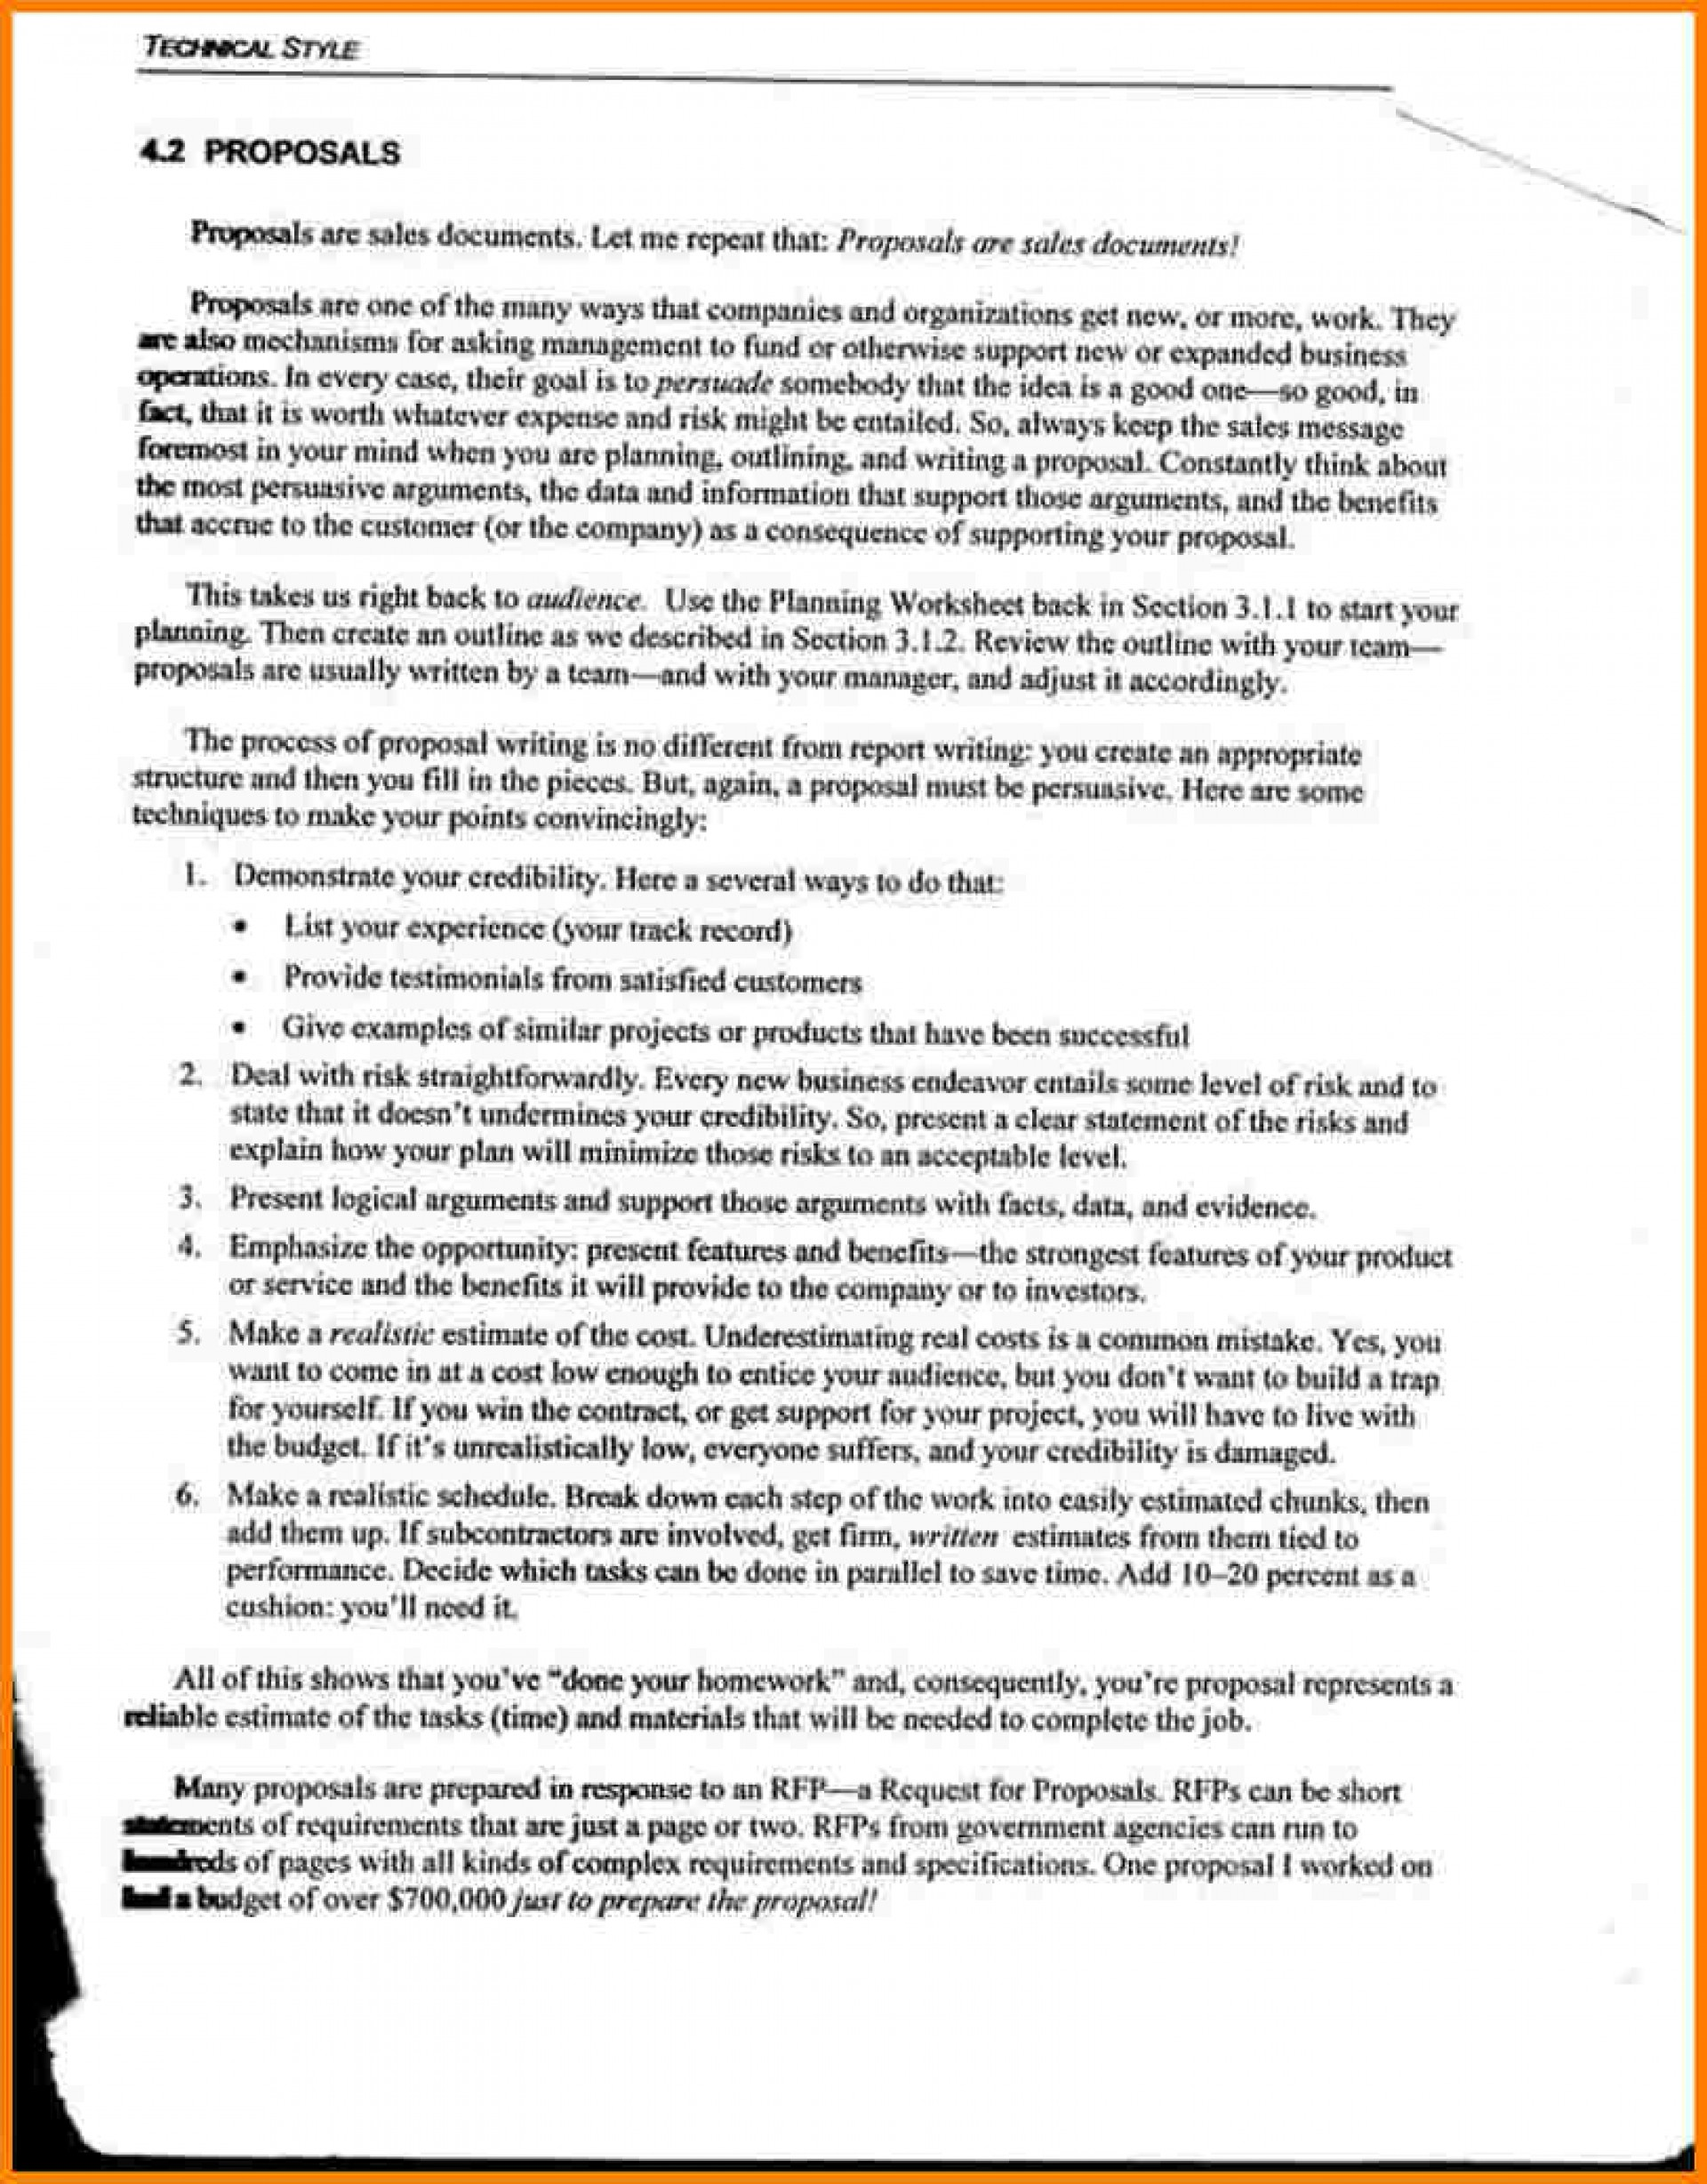 015 Research Proposal Apa Format Example 159390 How To Write Short For Breathtaking A Paper 1920